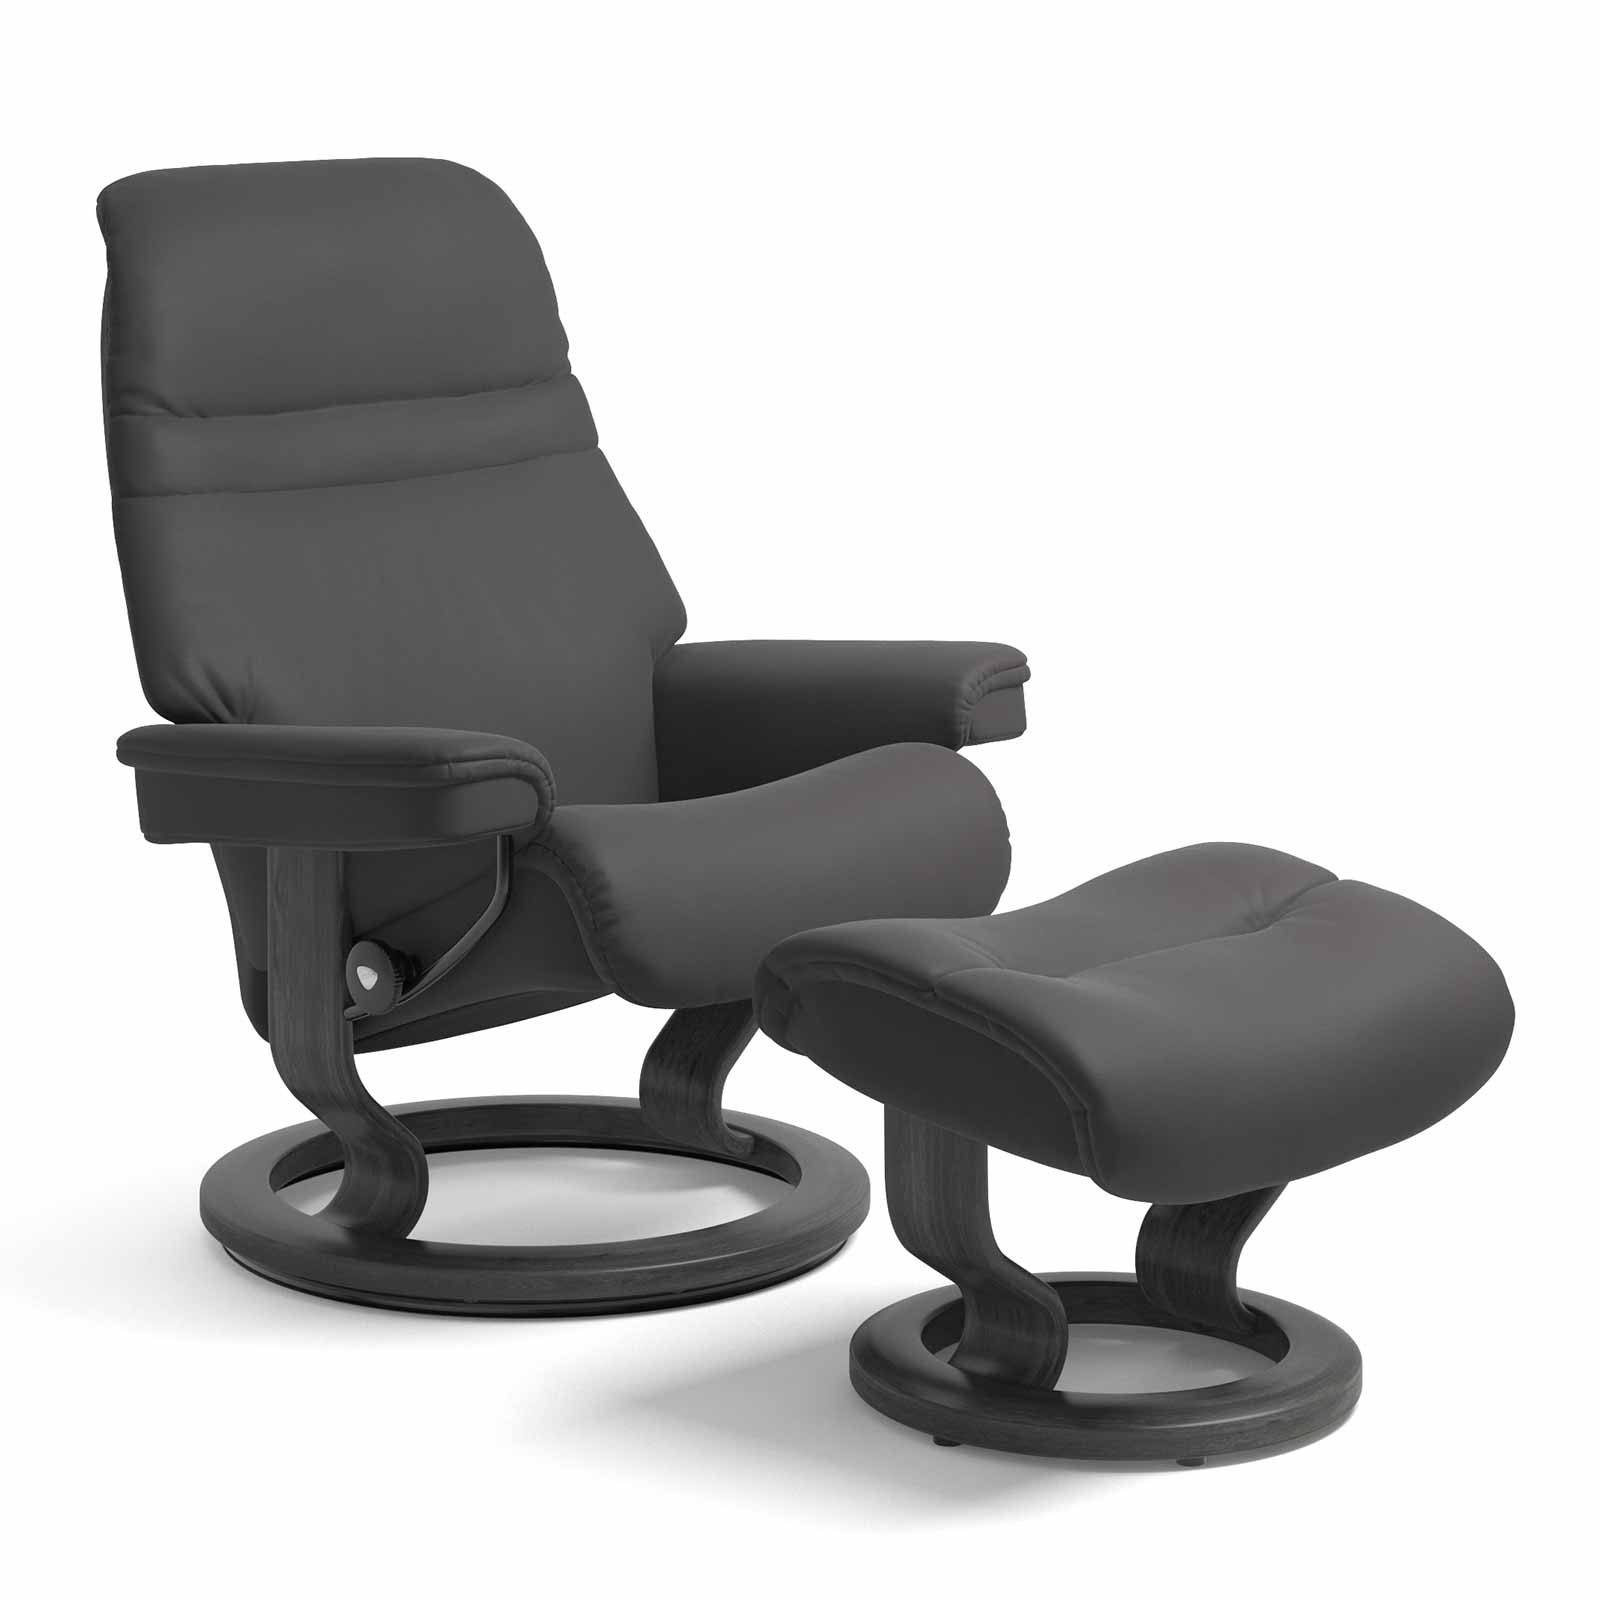 Stressless Sessel Sunrise Classic Paloma Rock Grau 12370150948008